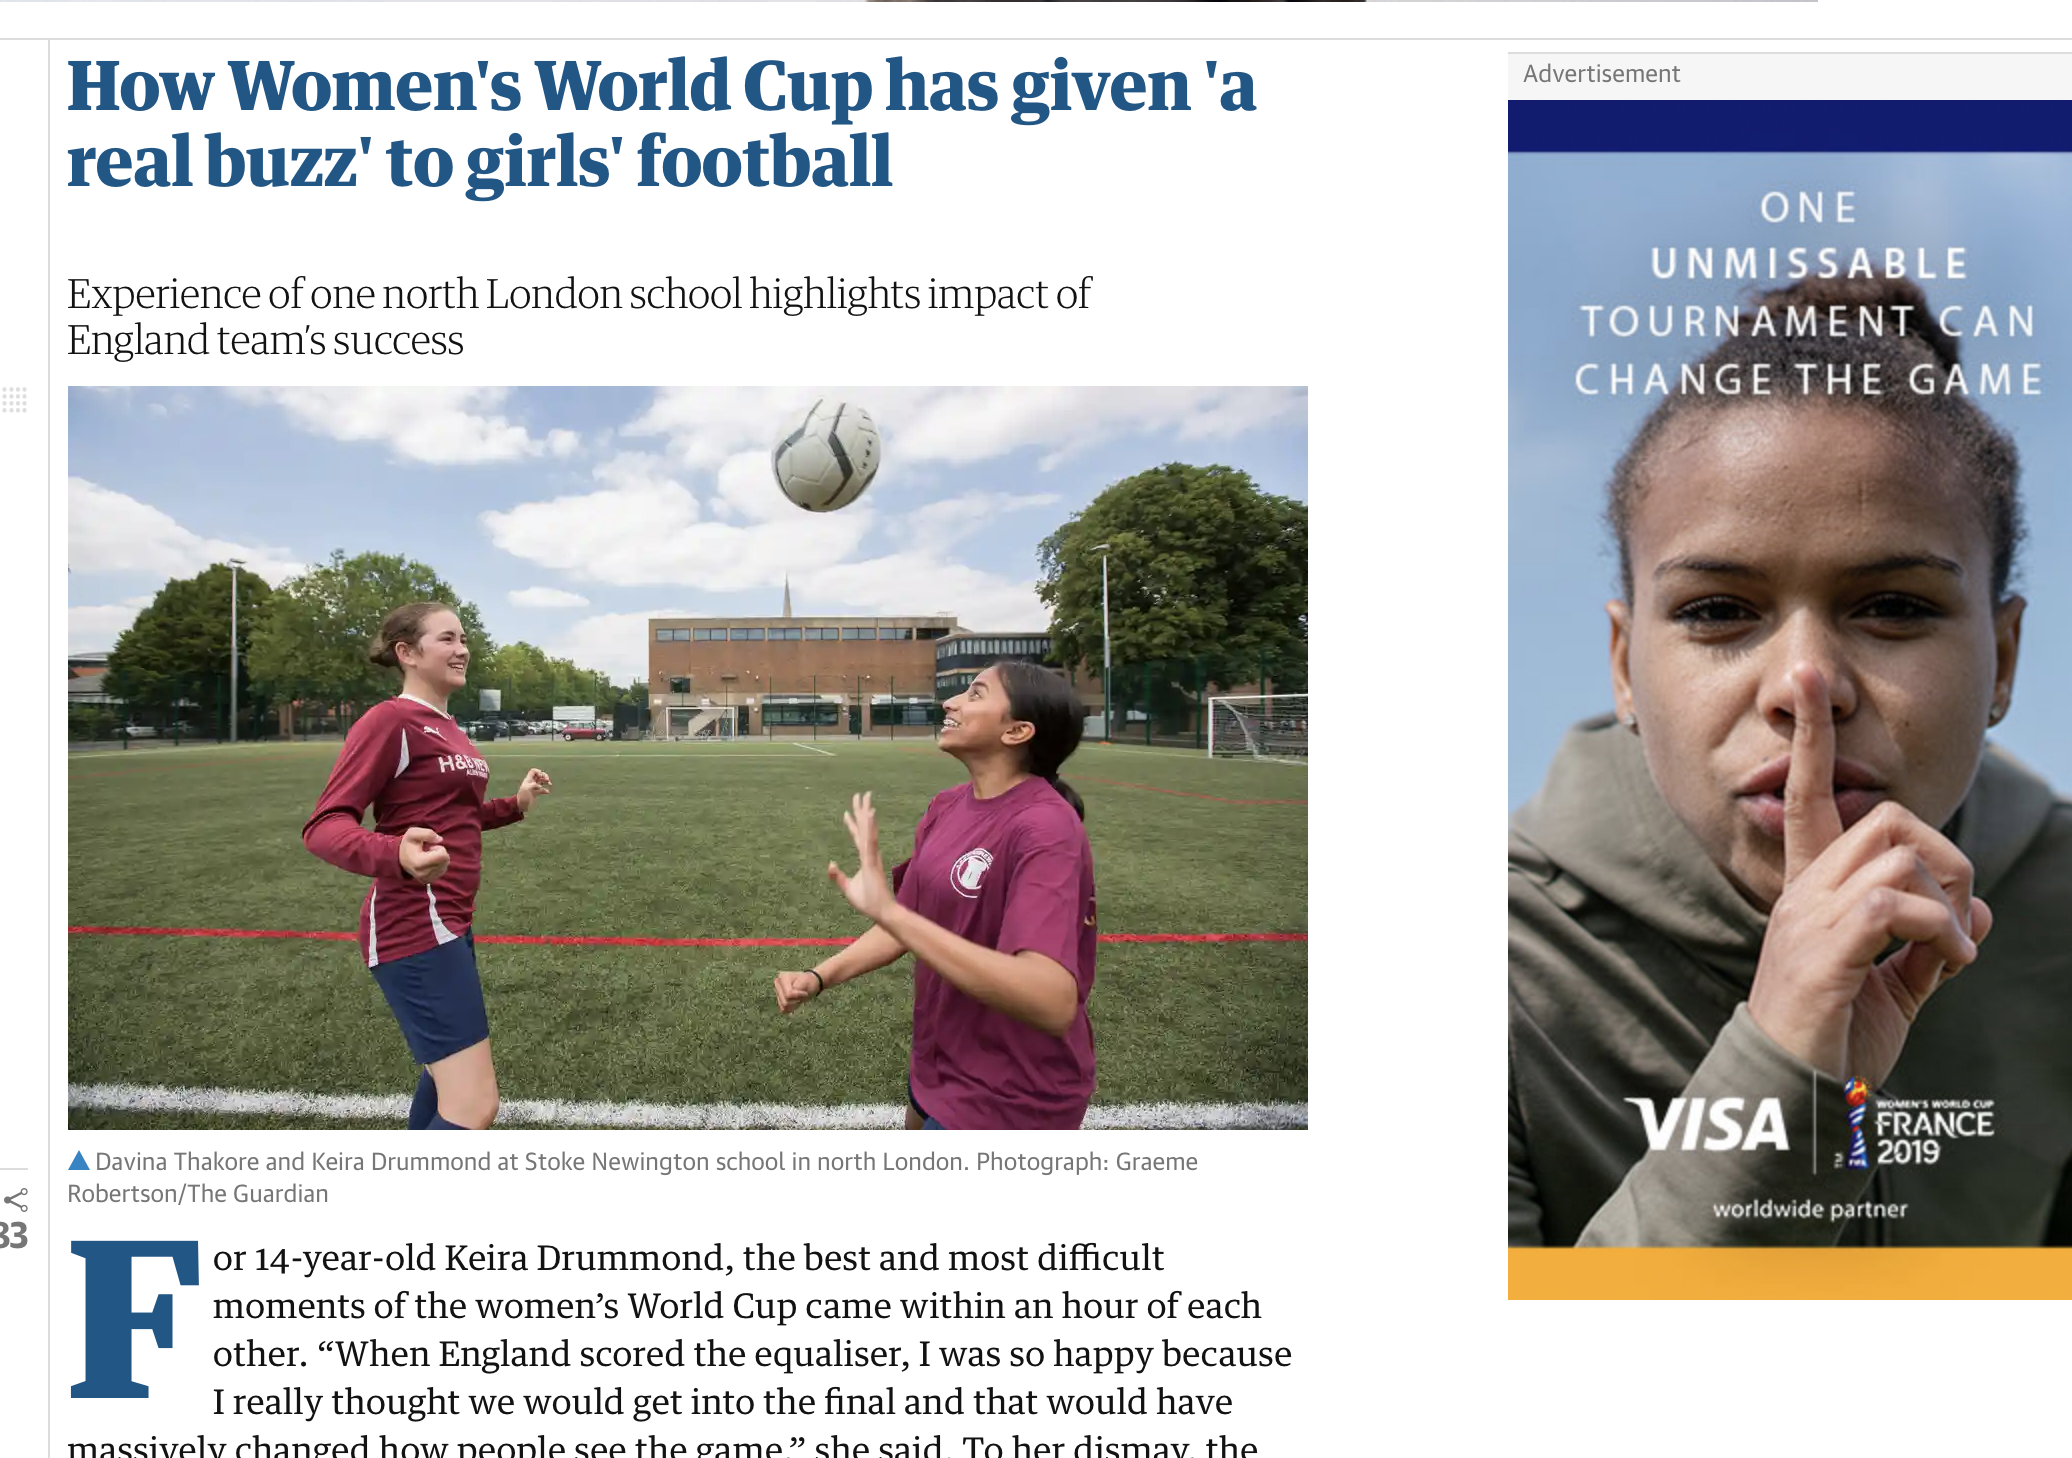 The Guardian: How Women's World Cup has given 'a real buzz' to girls' football